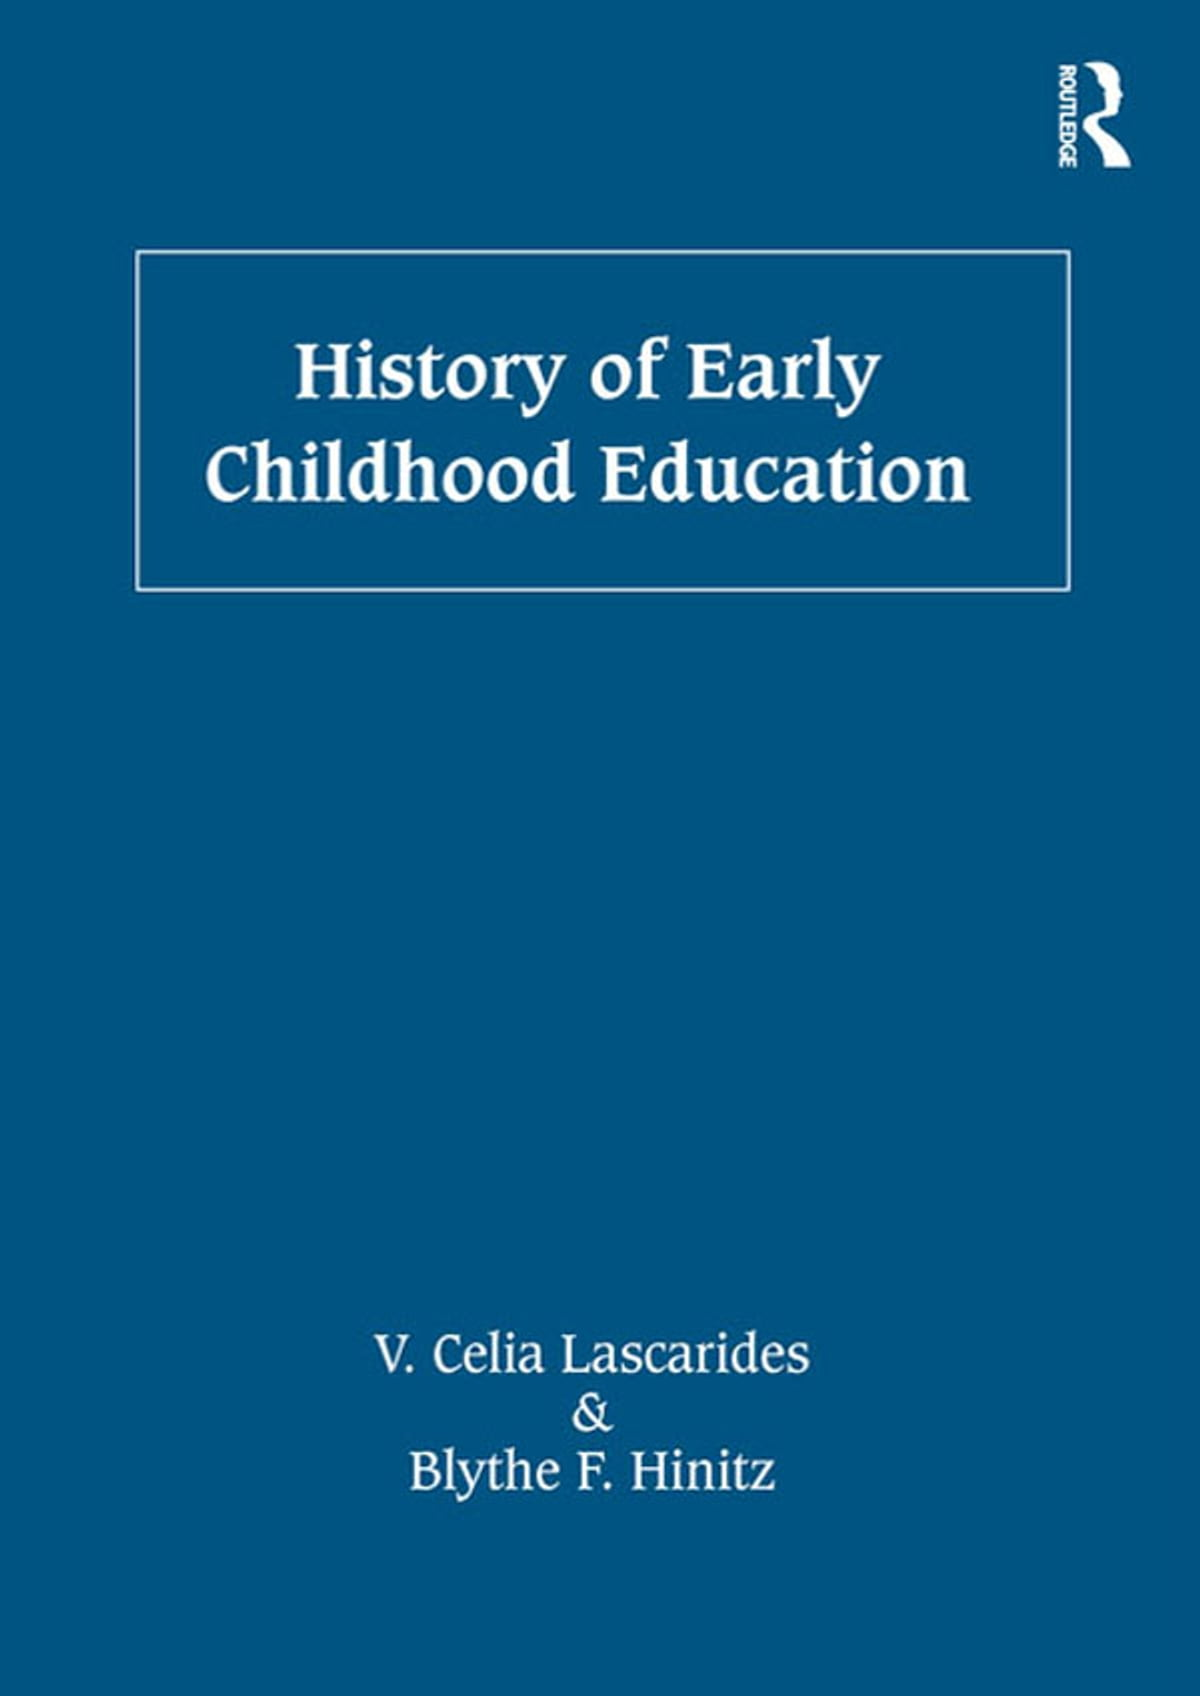 essays on philosophy of early childhood education Philosophy of early childhood education every educator has their own philosophy on teaching that guides them throughout their professional career this philosophy is based upon their own belief system and their understanding of how best to ensure a quality education for the students in their care.